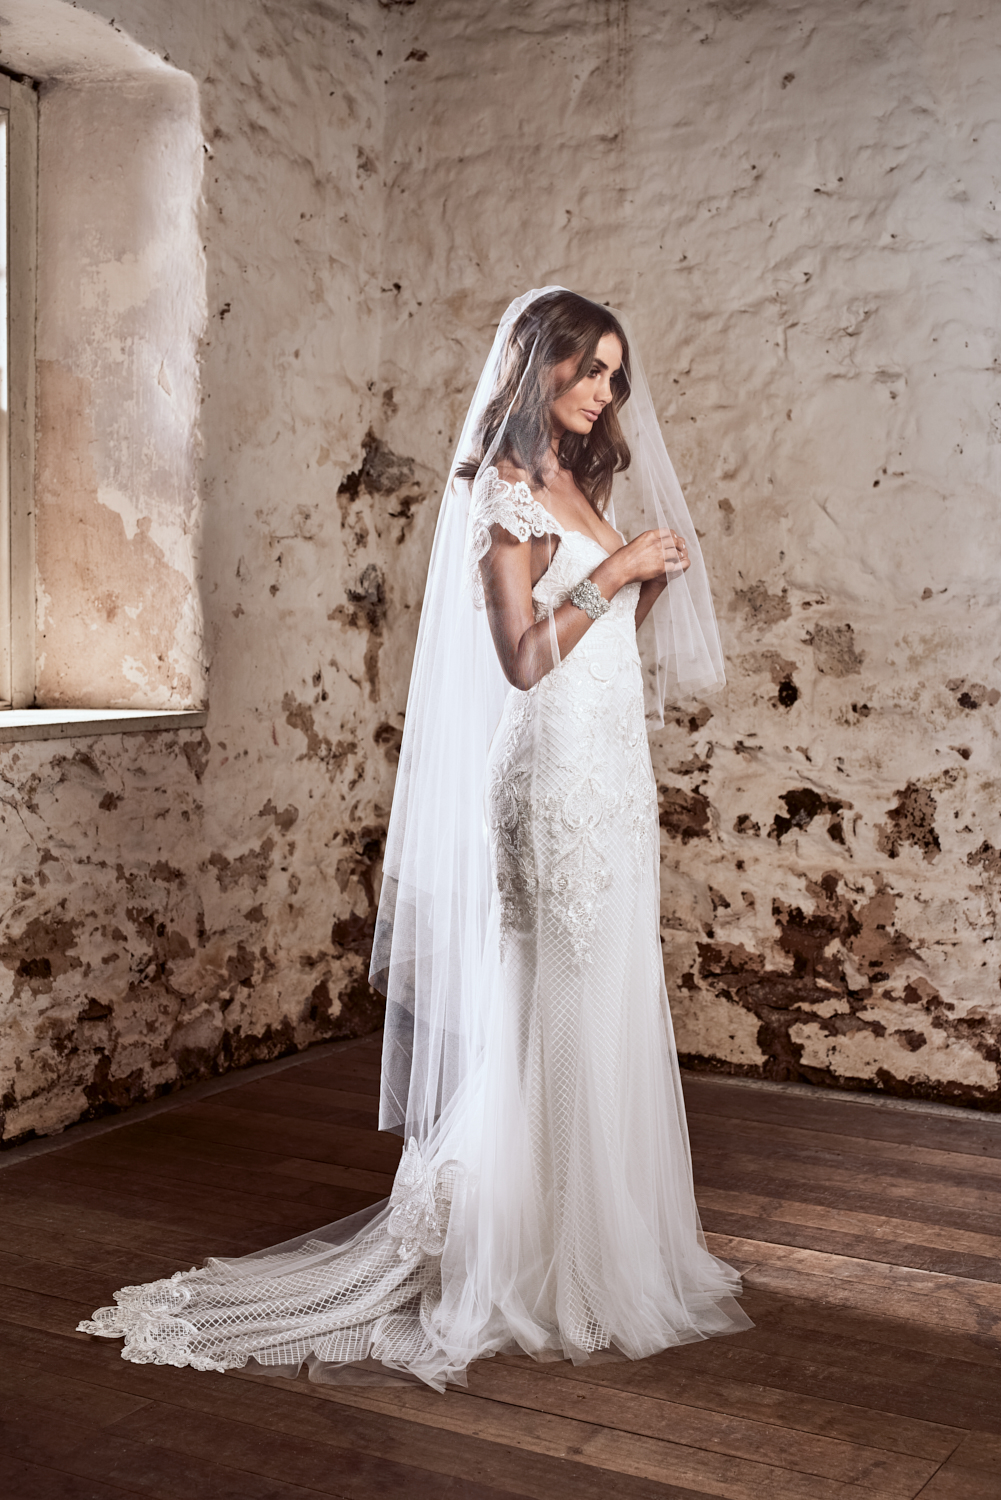 The Savannah (Trumpet) Dress styled with the Savannah Veil (Fingertip with Blusher)